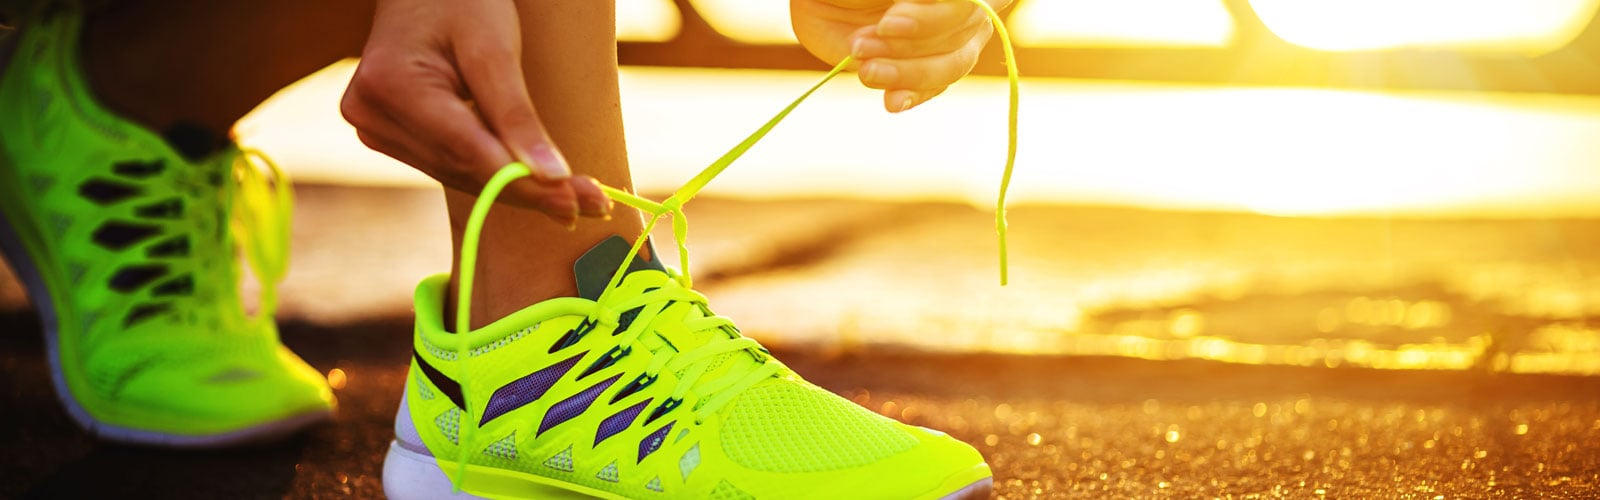 How To Lace Shoes For Running Tight On Top